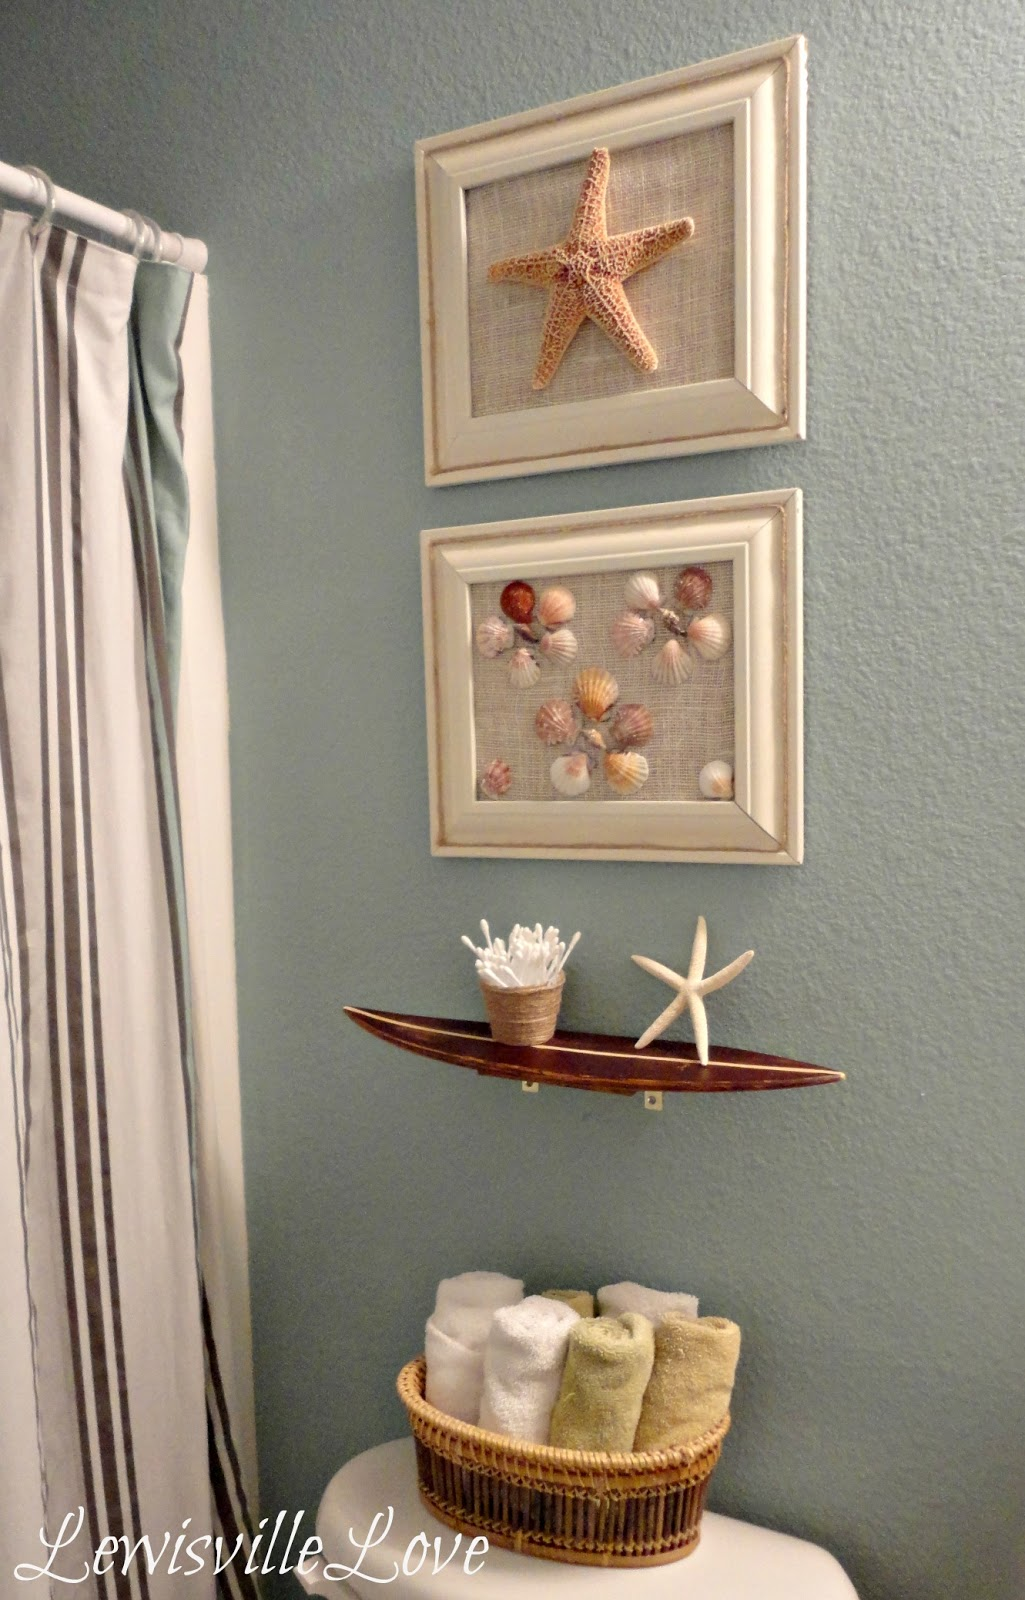 Lewisville love beach theme bathroom reveal - Nautical decor bathroom ...